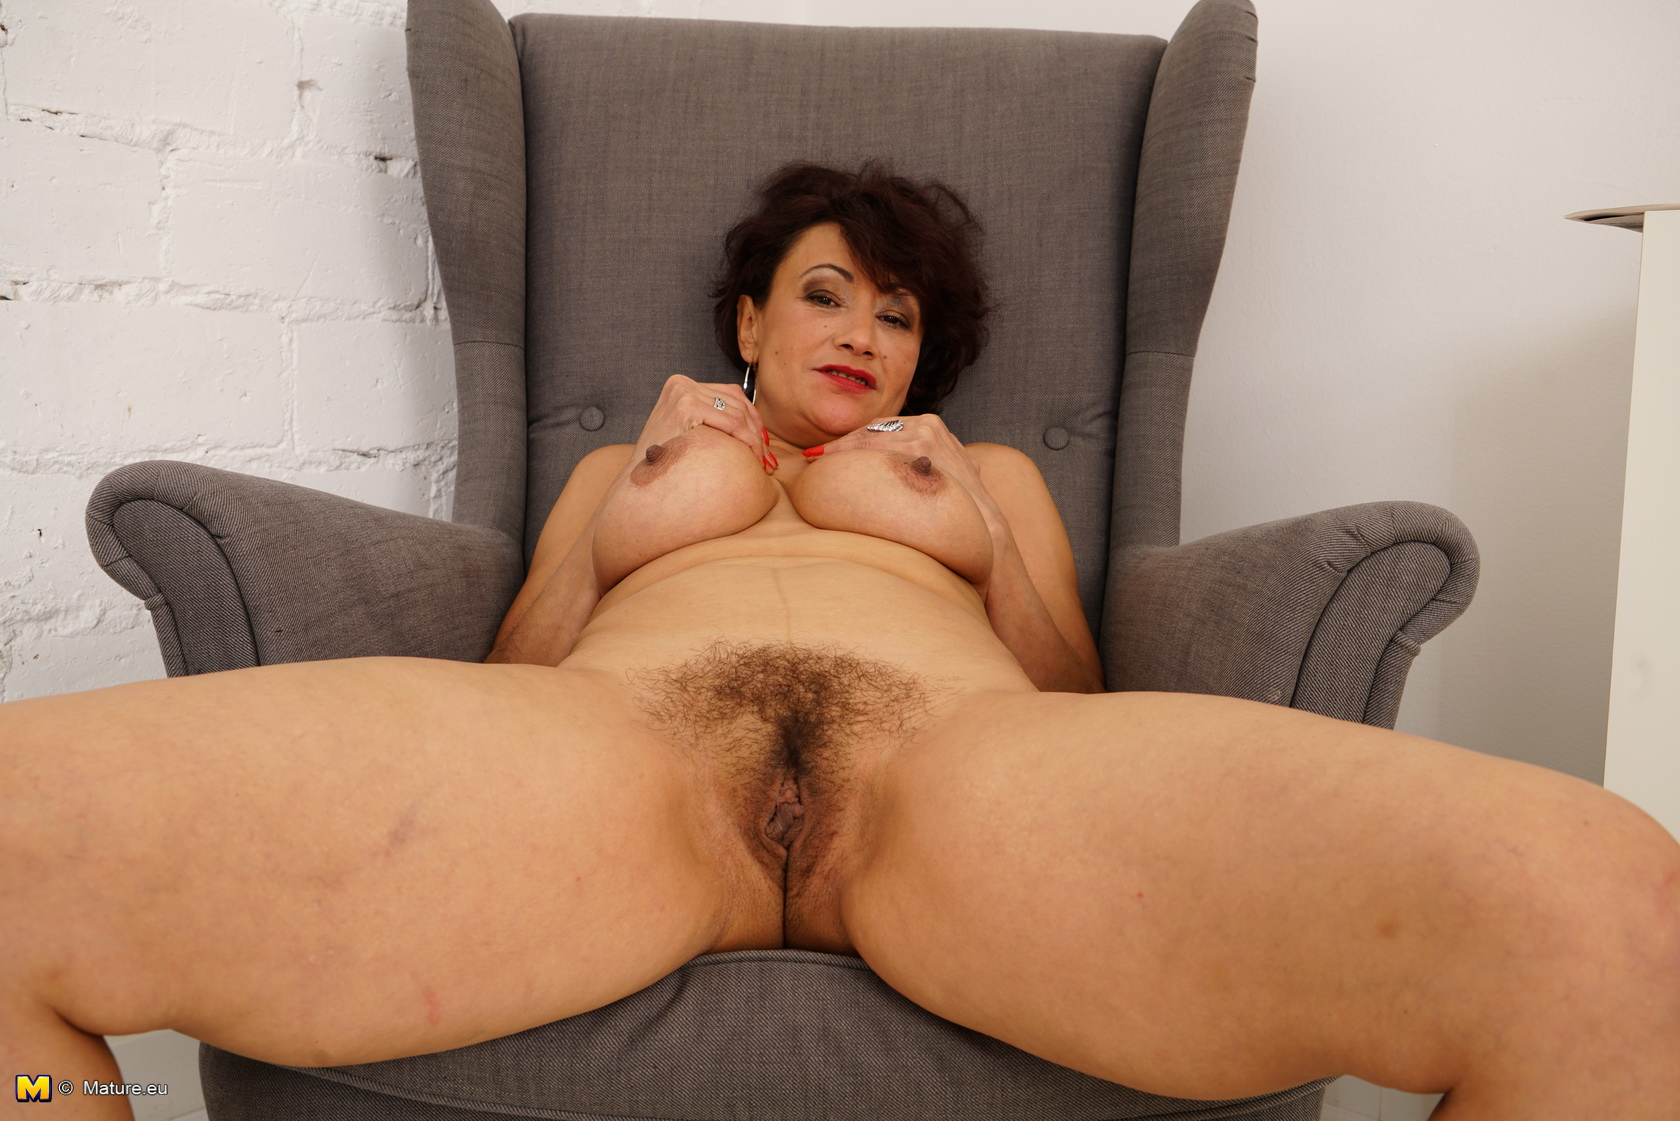 congratulate, what bbw milf spanking think, you will